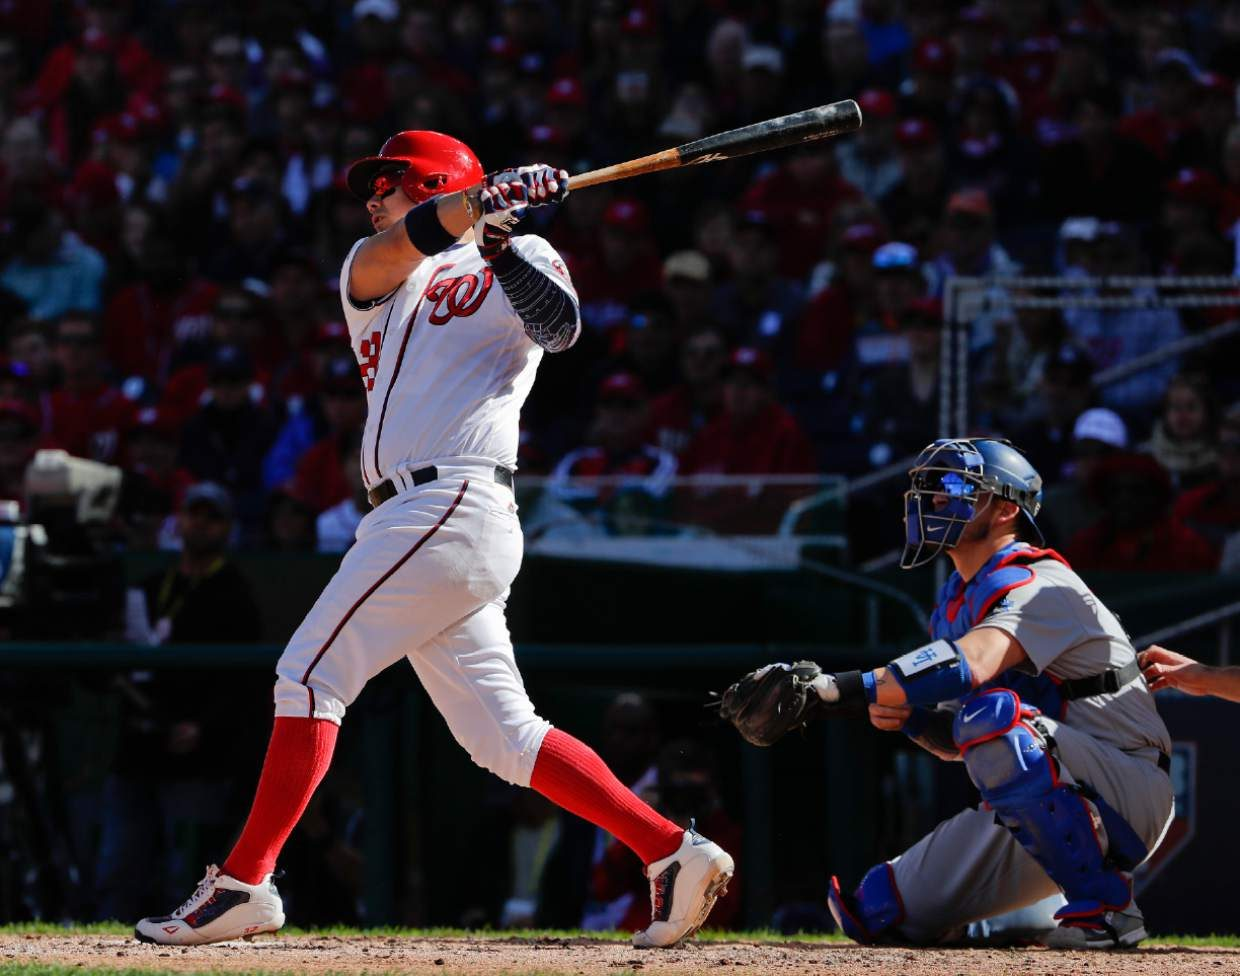 Washington Nationals' Jose Lobaton, left, connects for a three-run home run off Los Angeles Dodgers starting pitcher Rich Hill during the fourth inning in Game 2 of baseball's National League Division Series at Nationals Park, Sunday, Oct. 9, 2016, in Washington. Dodgers catcher Yasmani Grandal, right, looks on. (AP Photo/Pablo Martinez Monsivais)